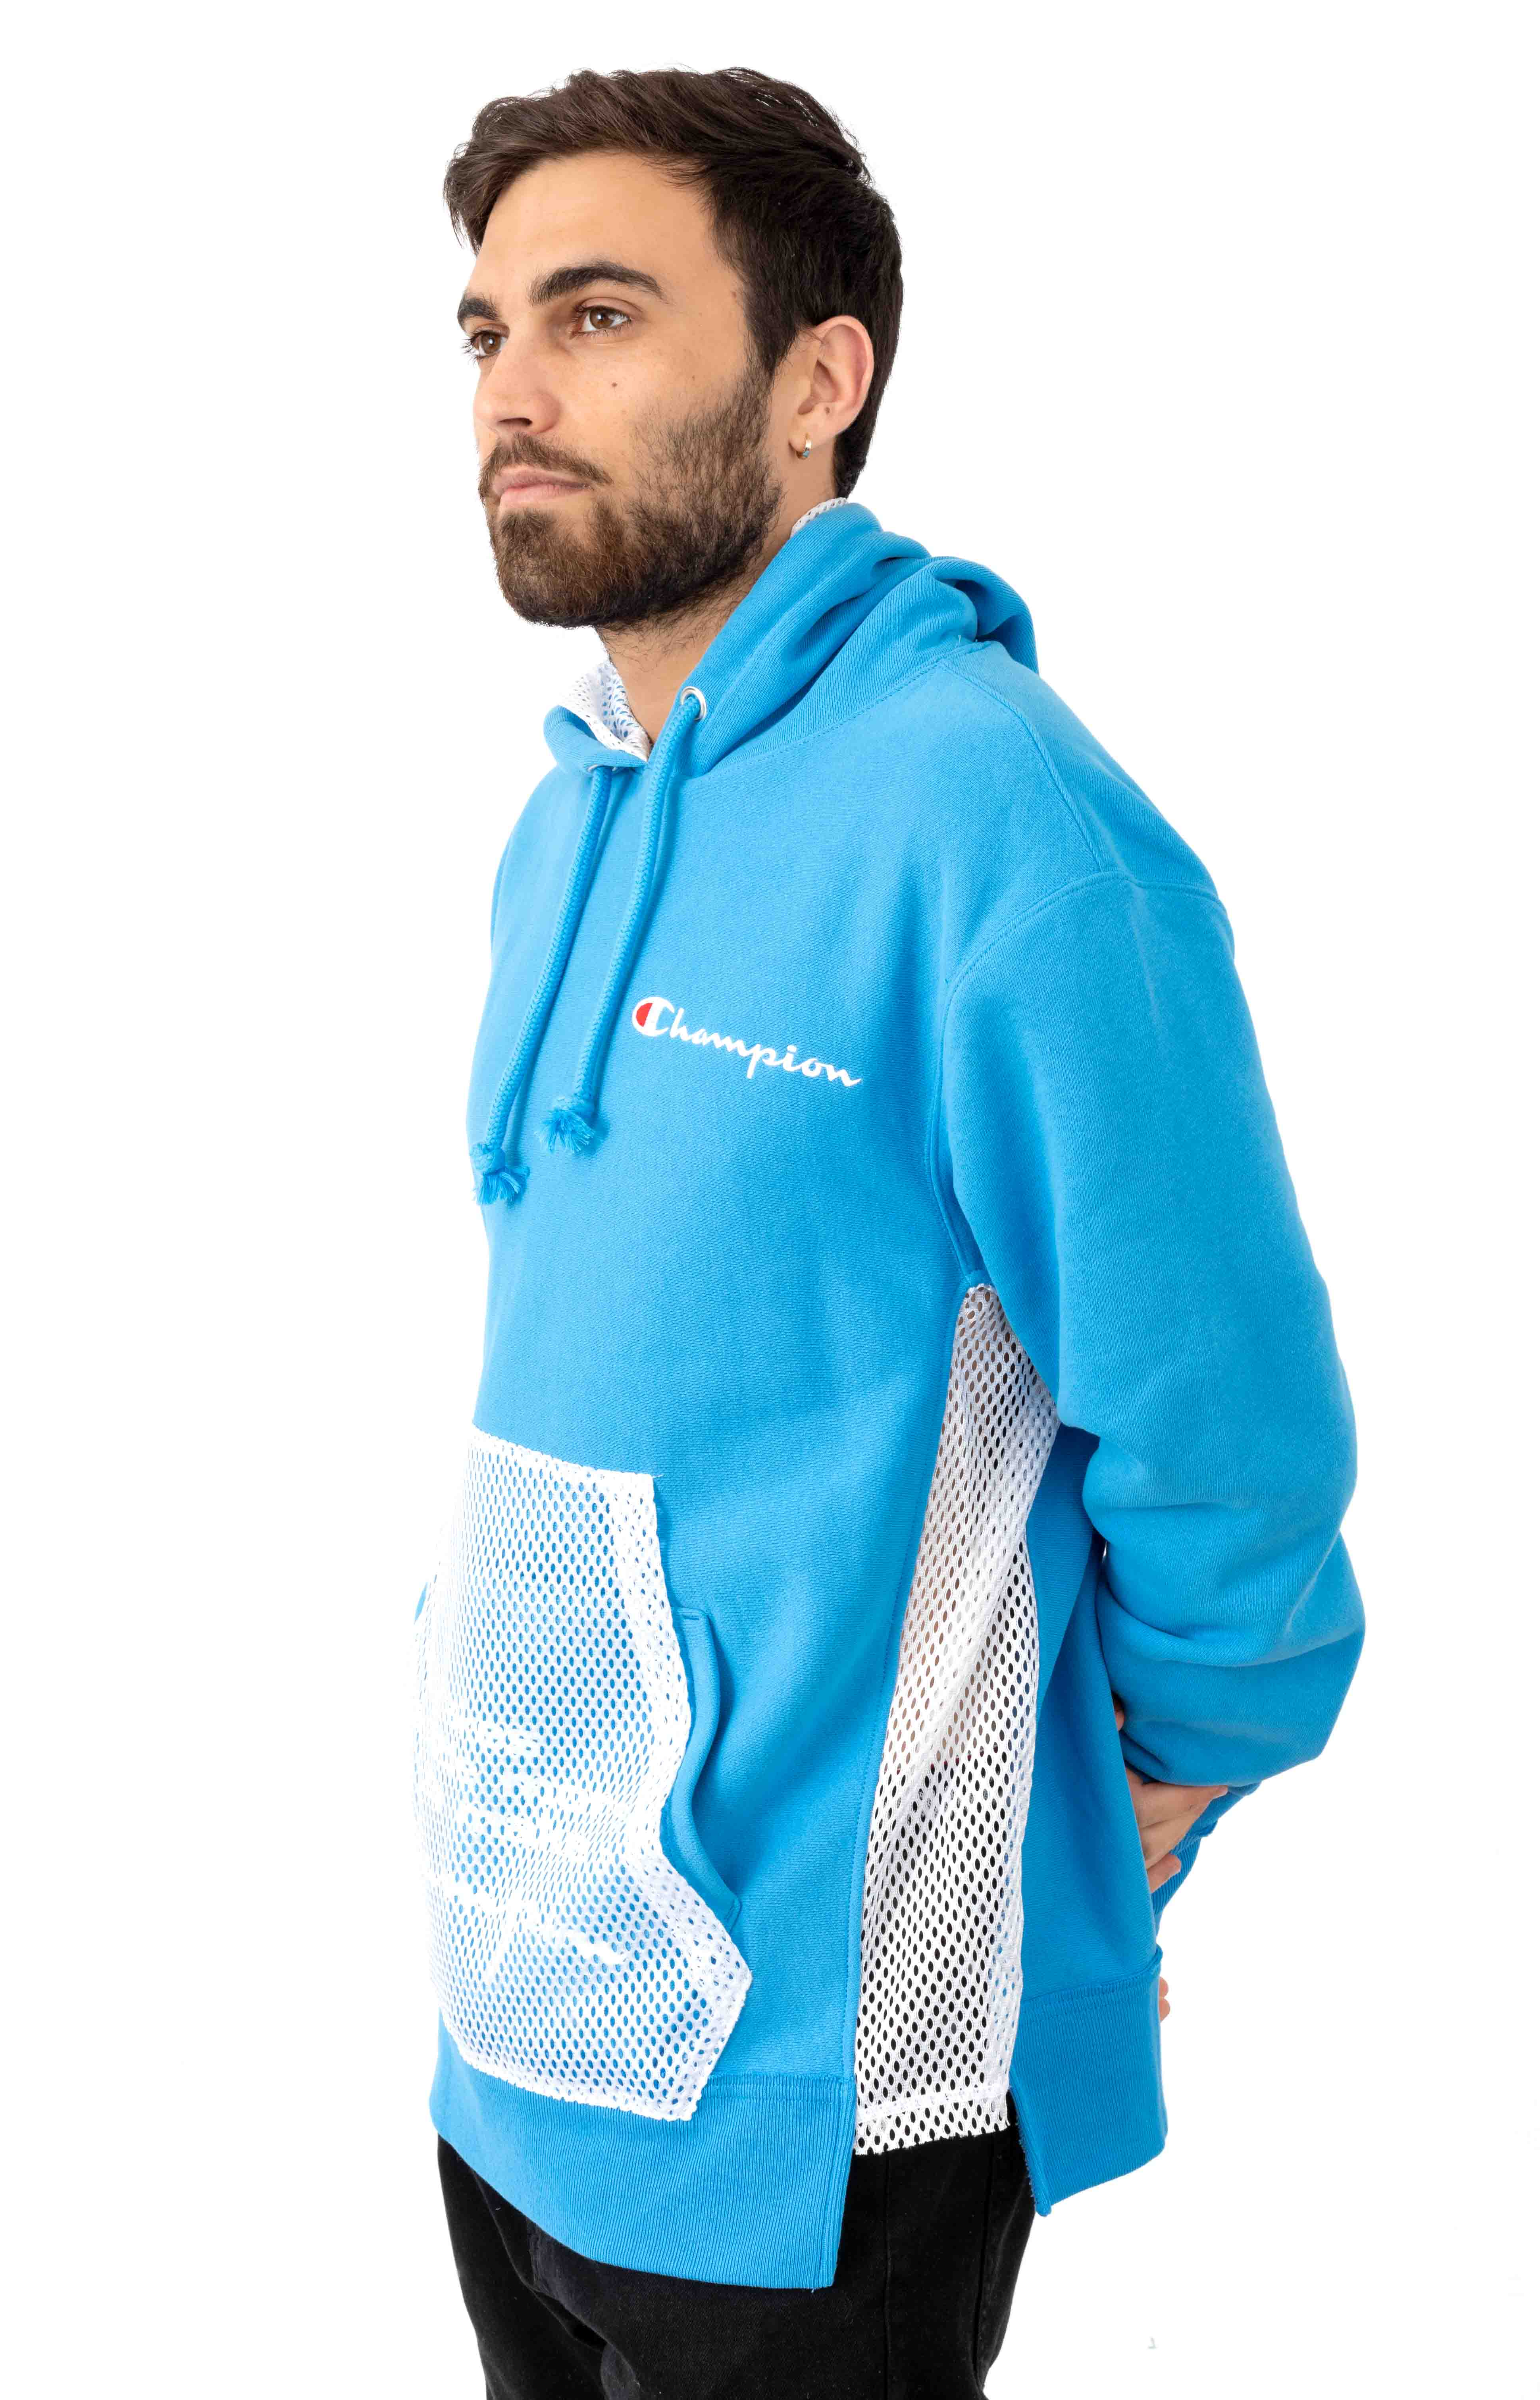 Reverse Weave Shift Pullover Hoodie - Active Blue/White 2